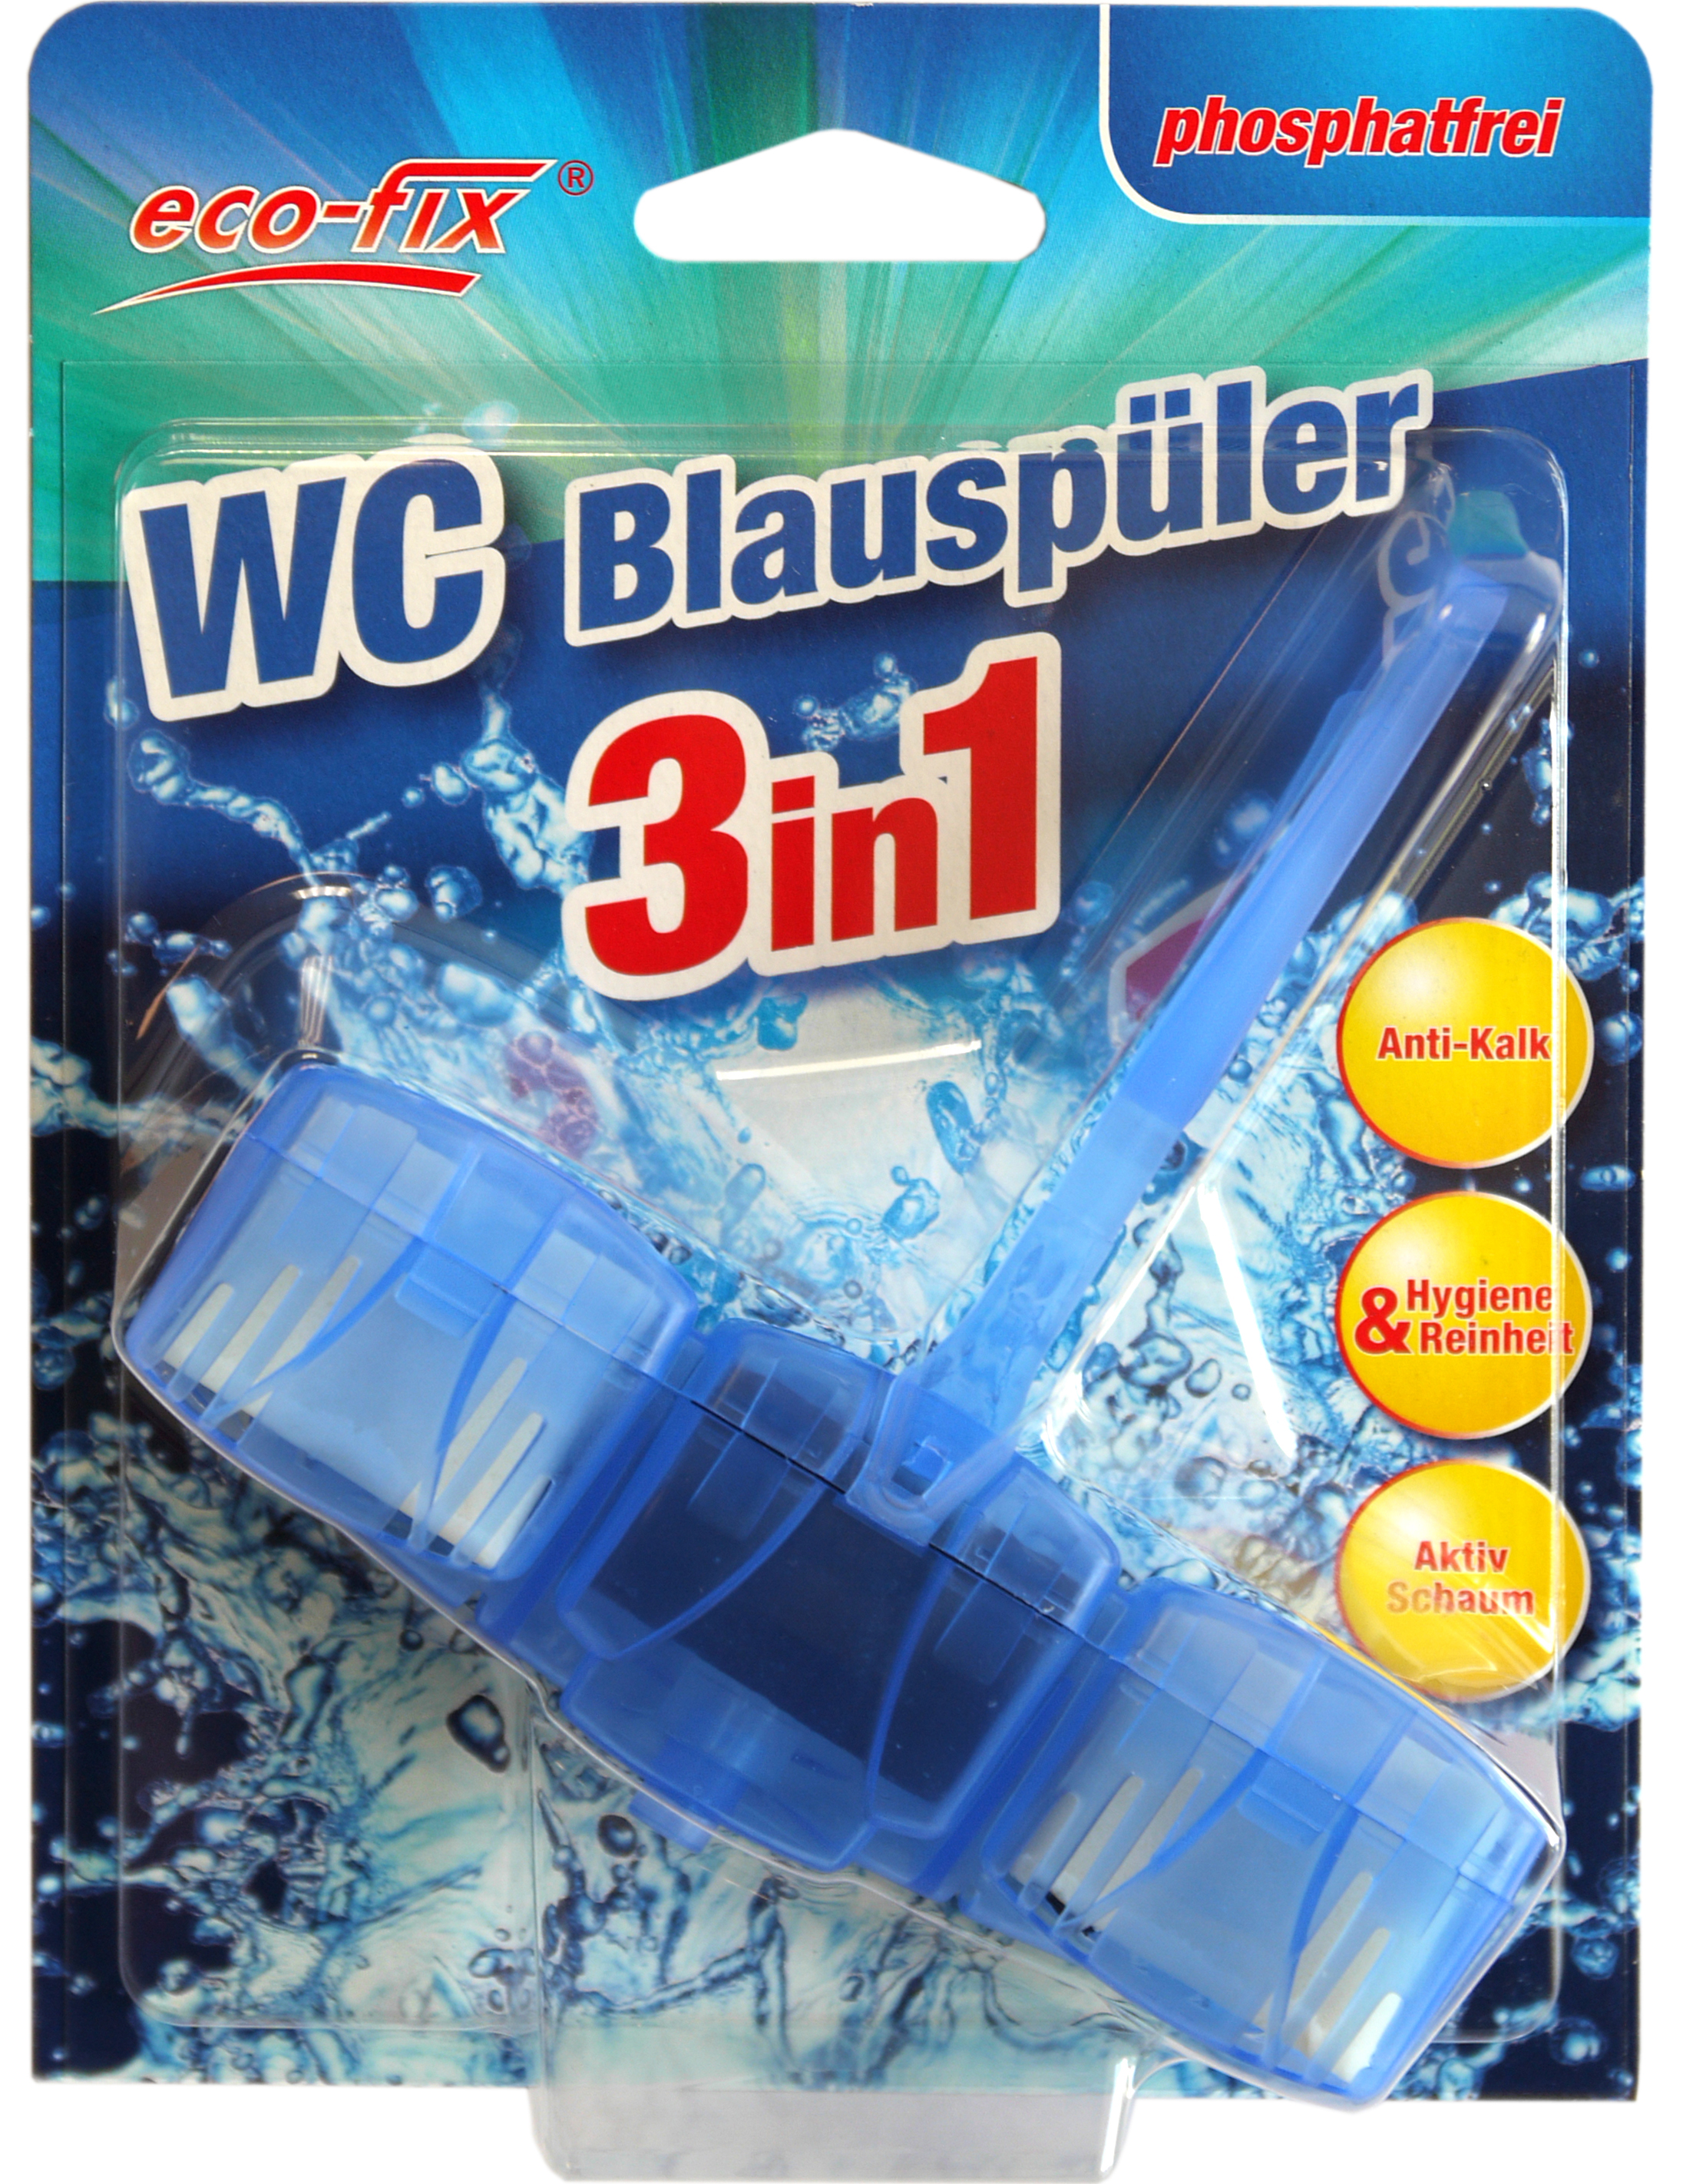 00859 - eco-fix WC Blauspüler 2in1 mit Chlor 1x40g